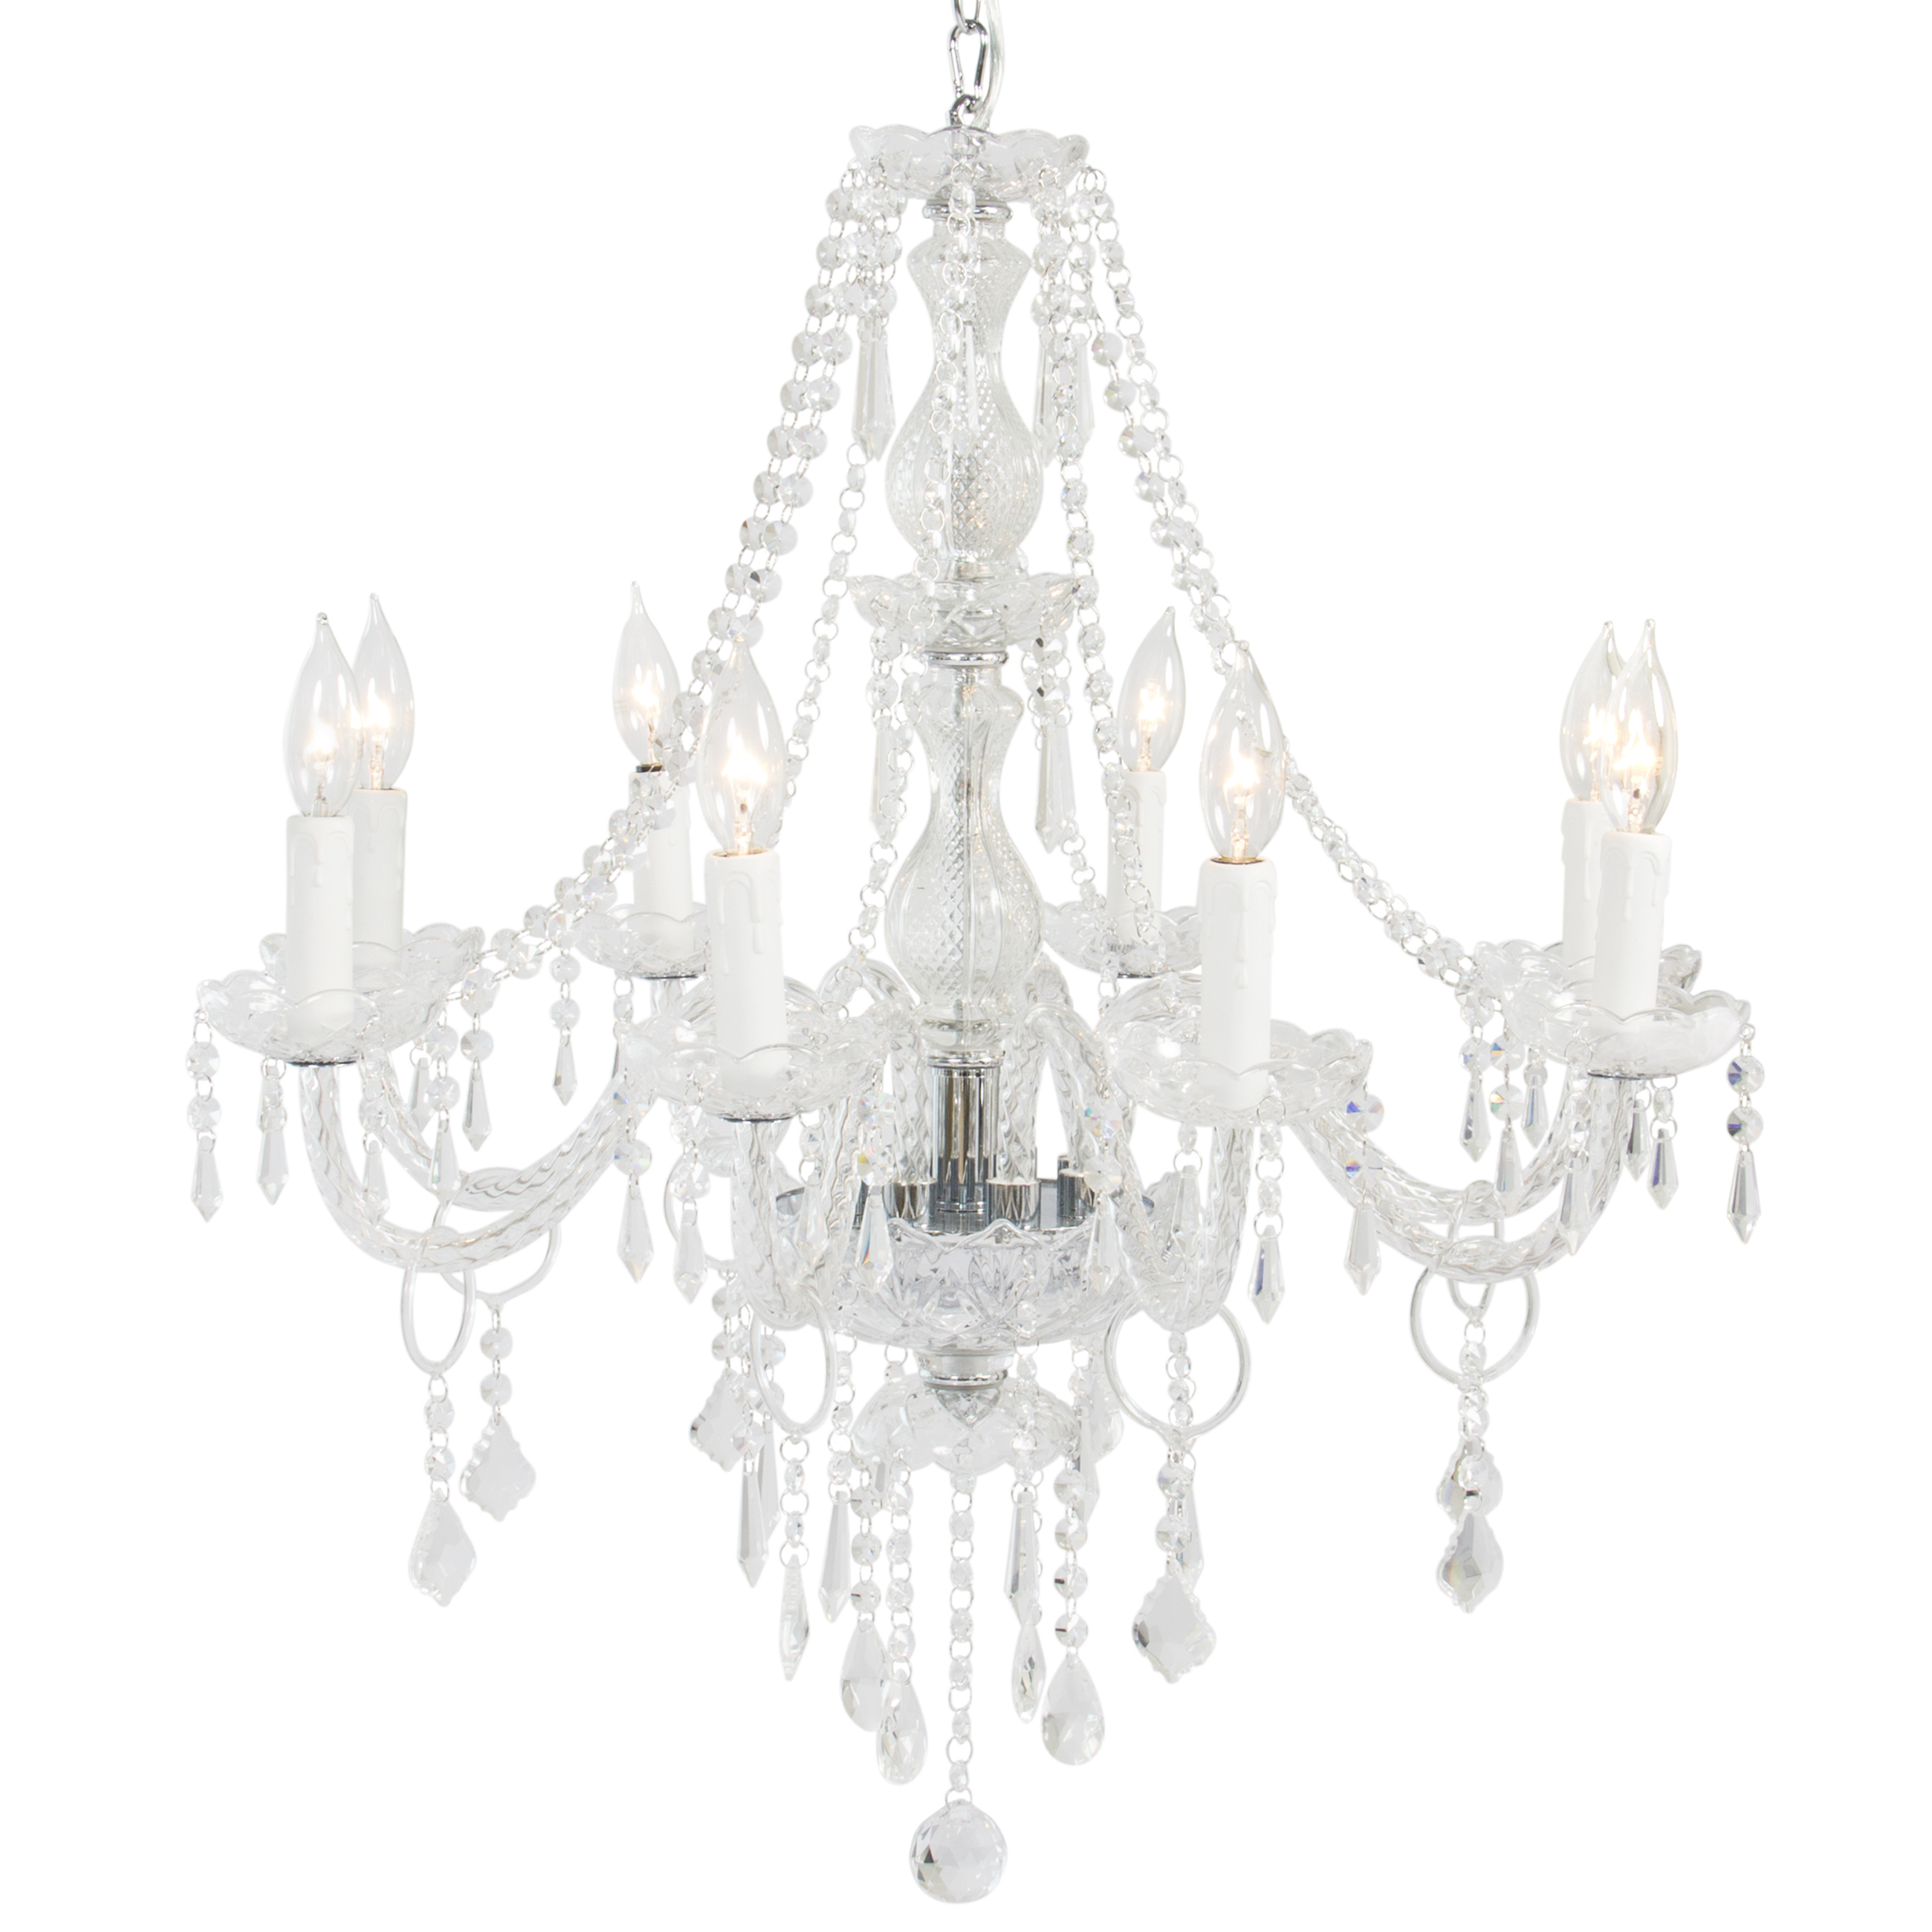 BCP Crystal Chandelier 8 Lights Pendant Glass Ceiling Lamp Center Lighting by SKY